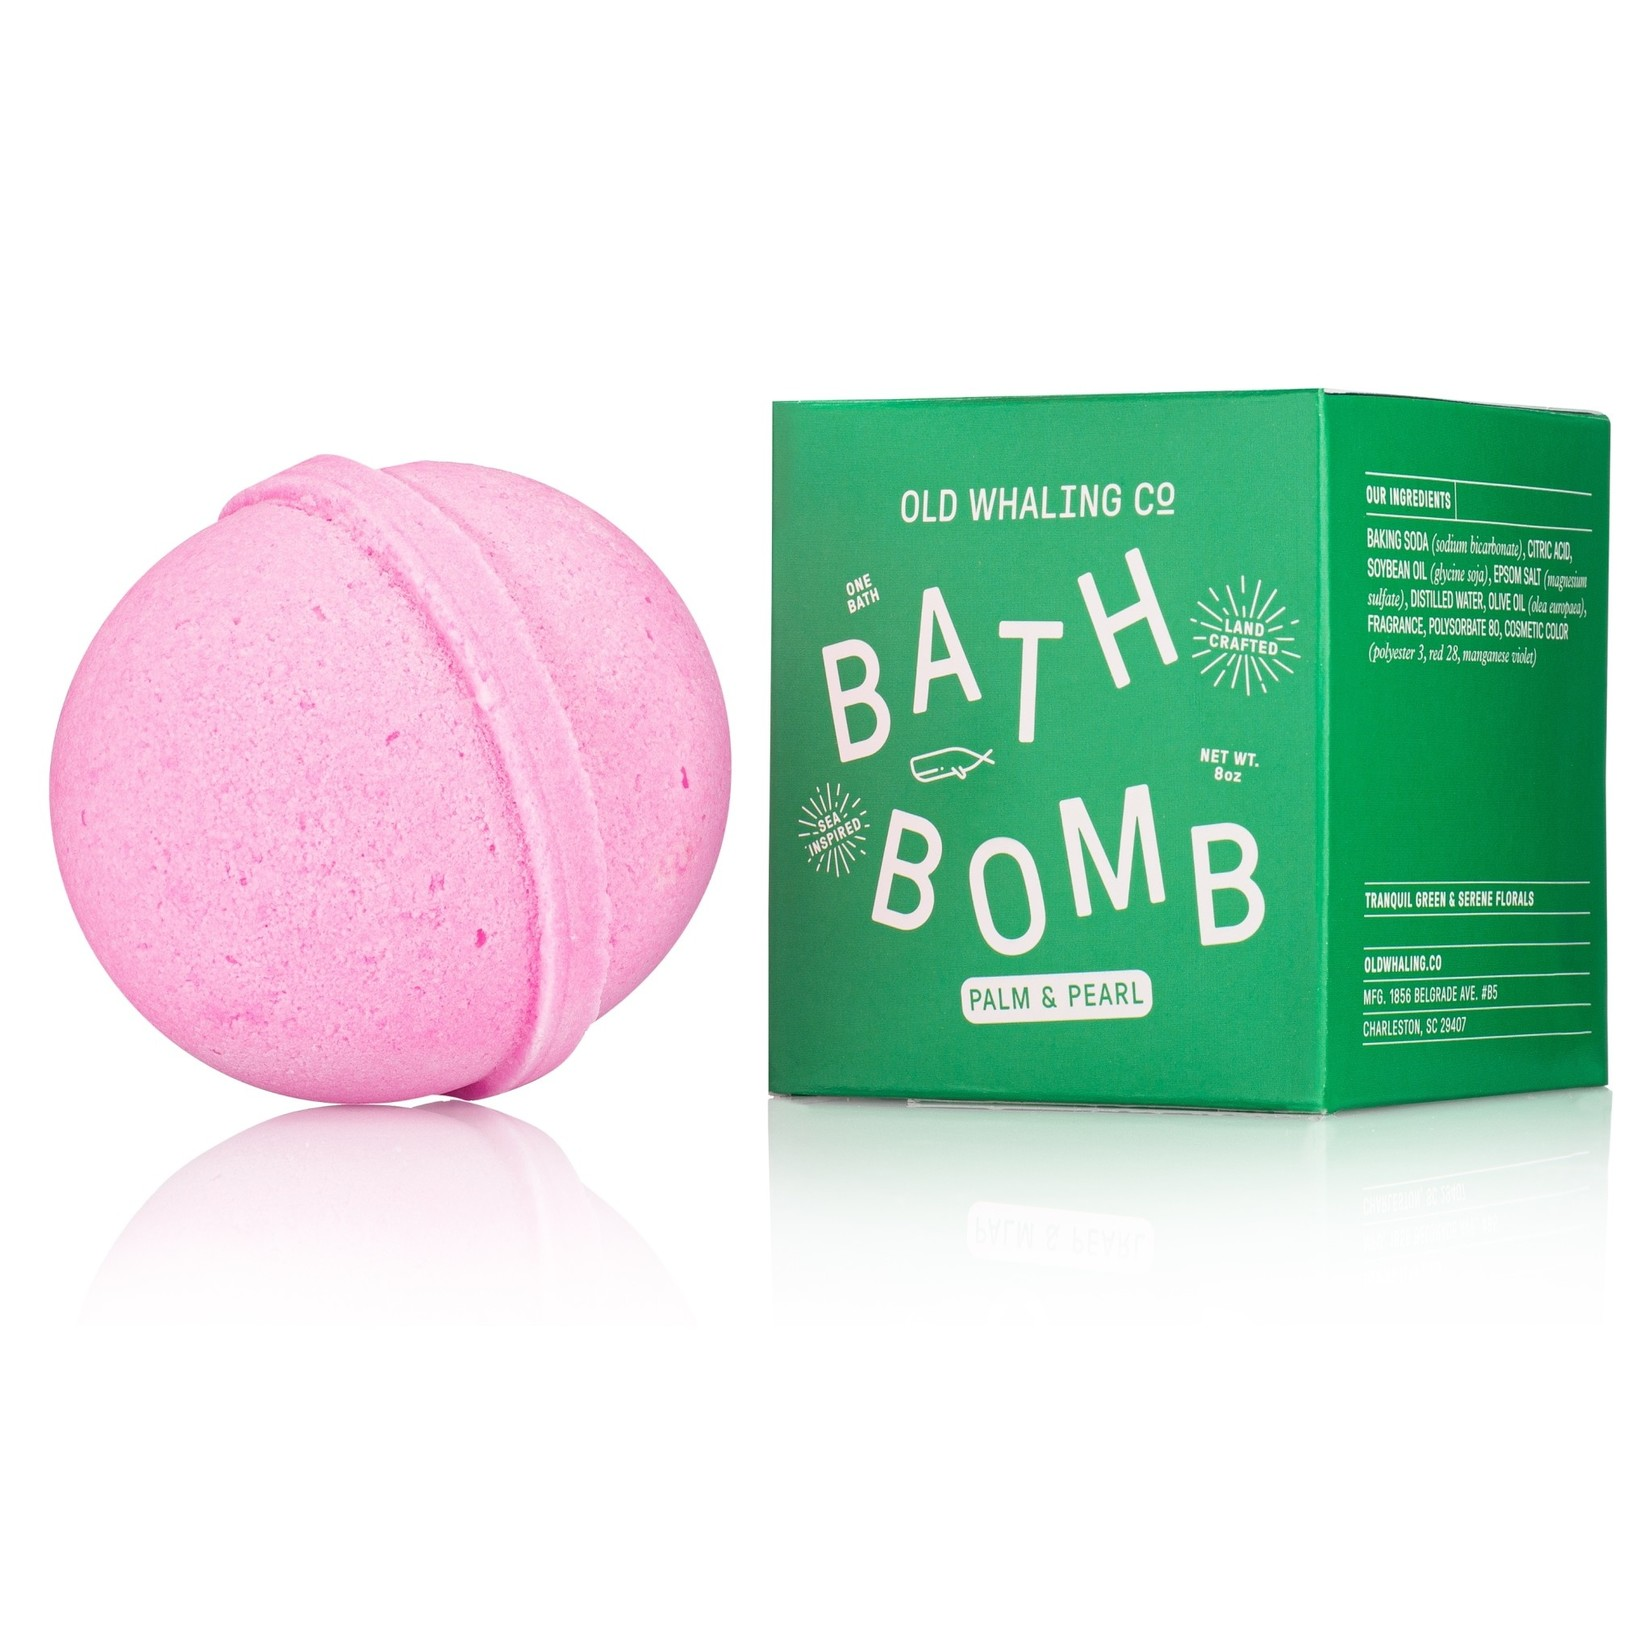 Old Whaling Company Old Whaling Company Bath Bomb Palm & Pearl